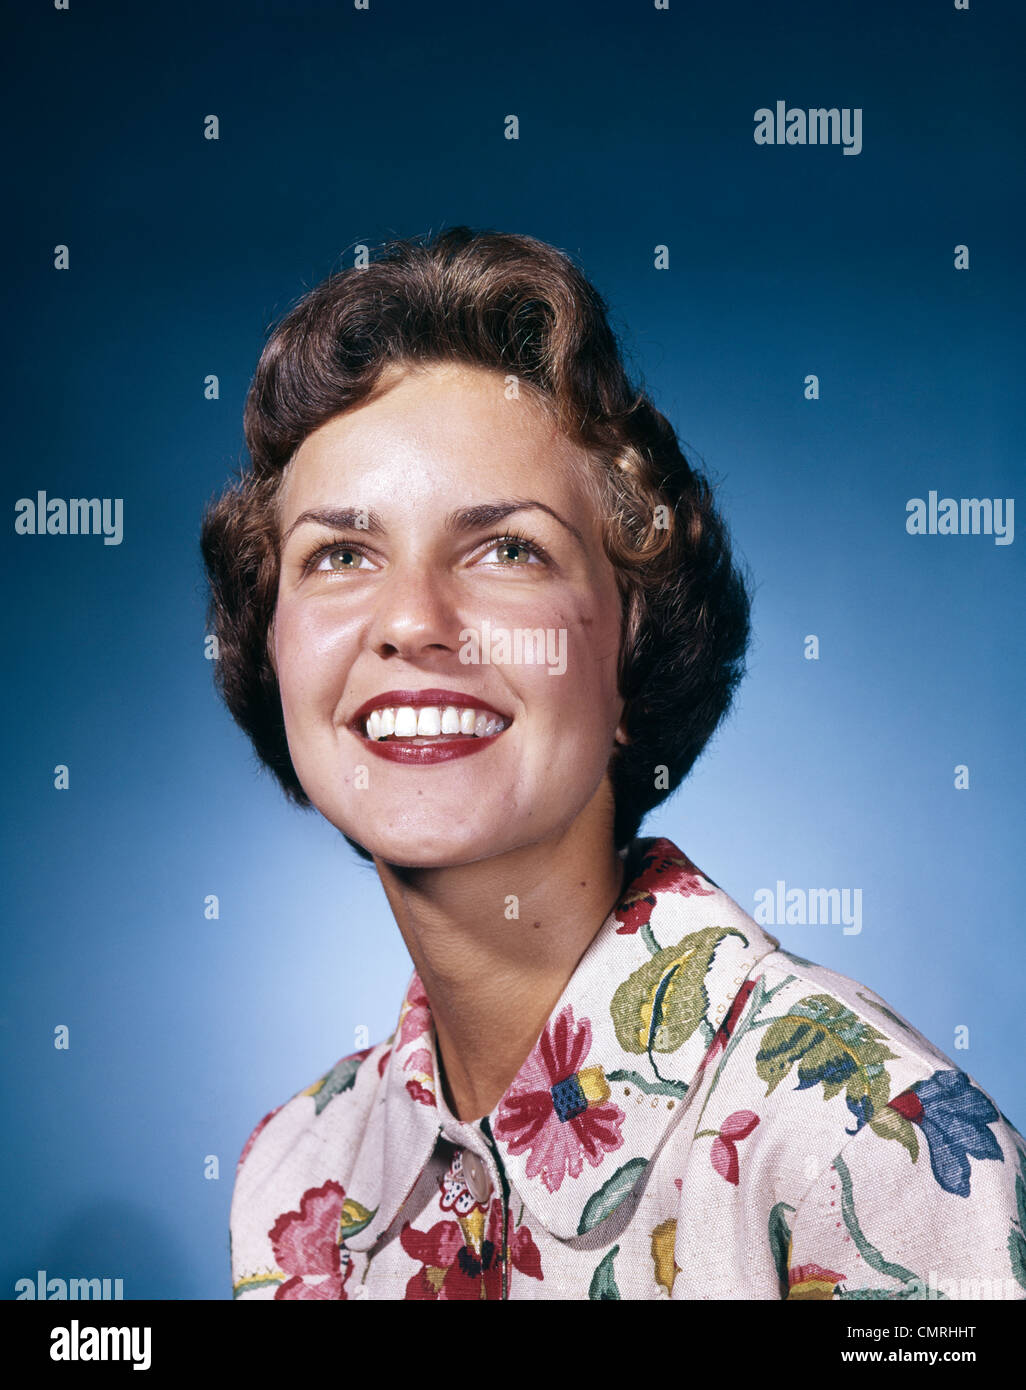 1960s SMILING WOMAN IN WHITE PRINT DRESS LOOKING UP STUDIO - Stock Image